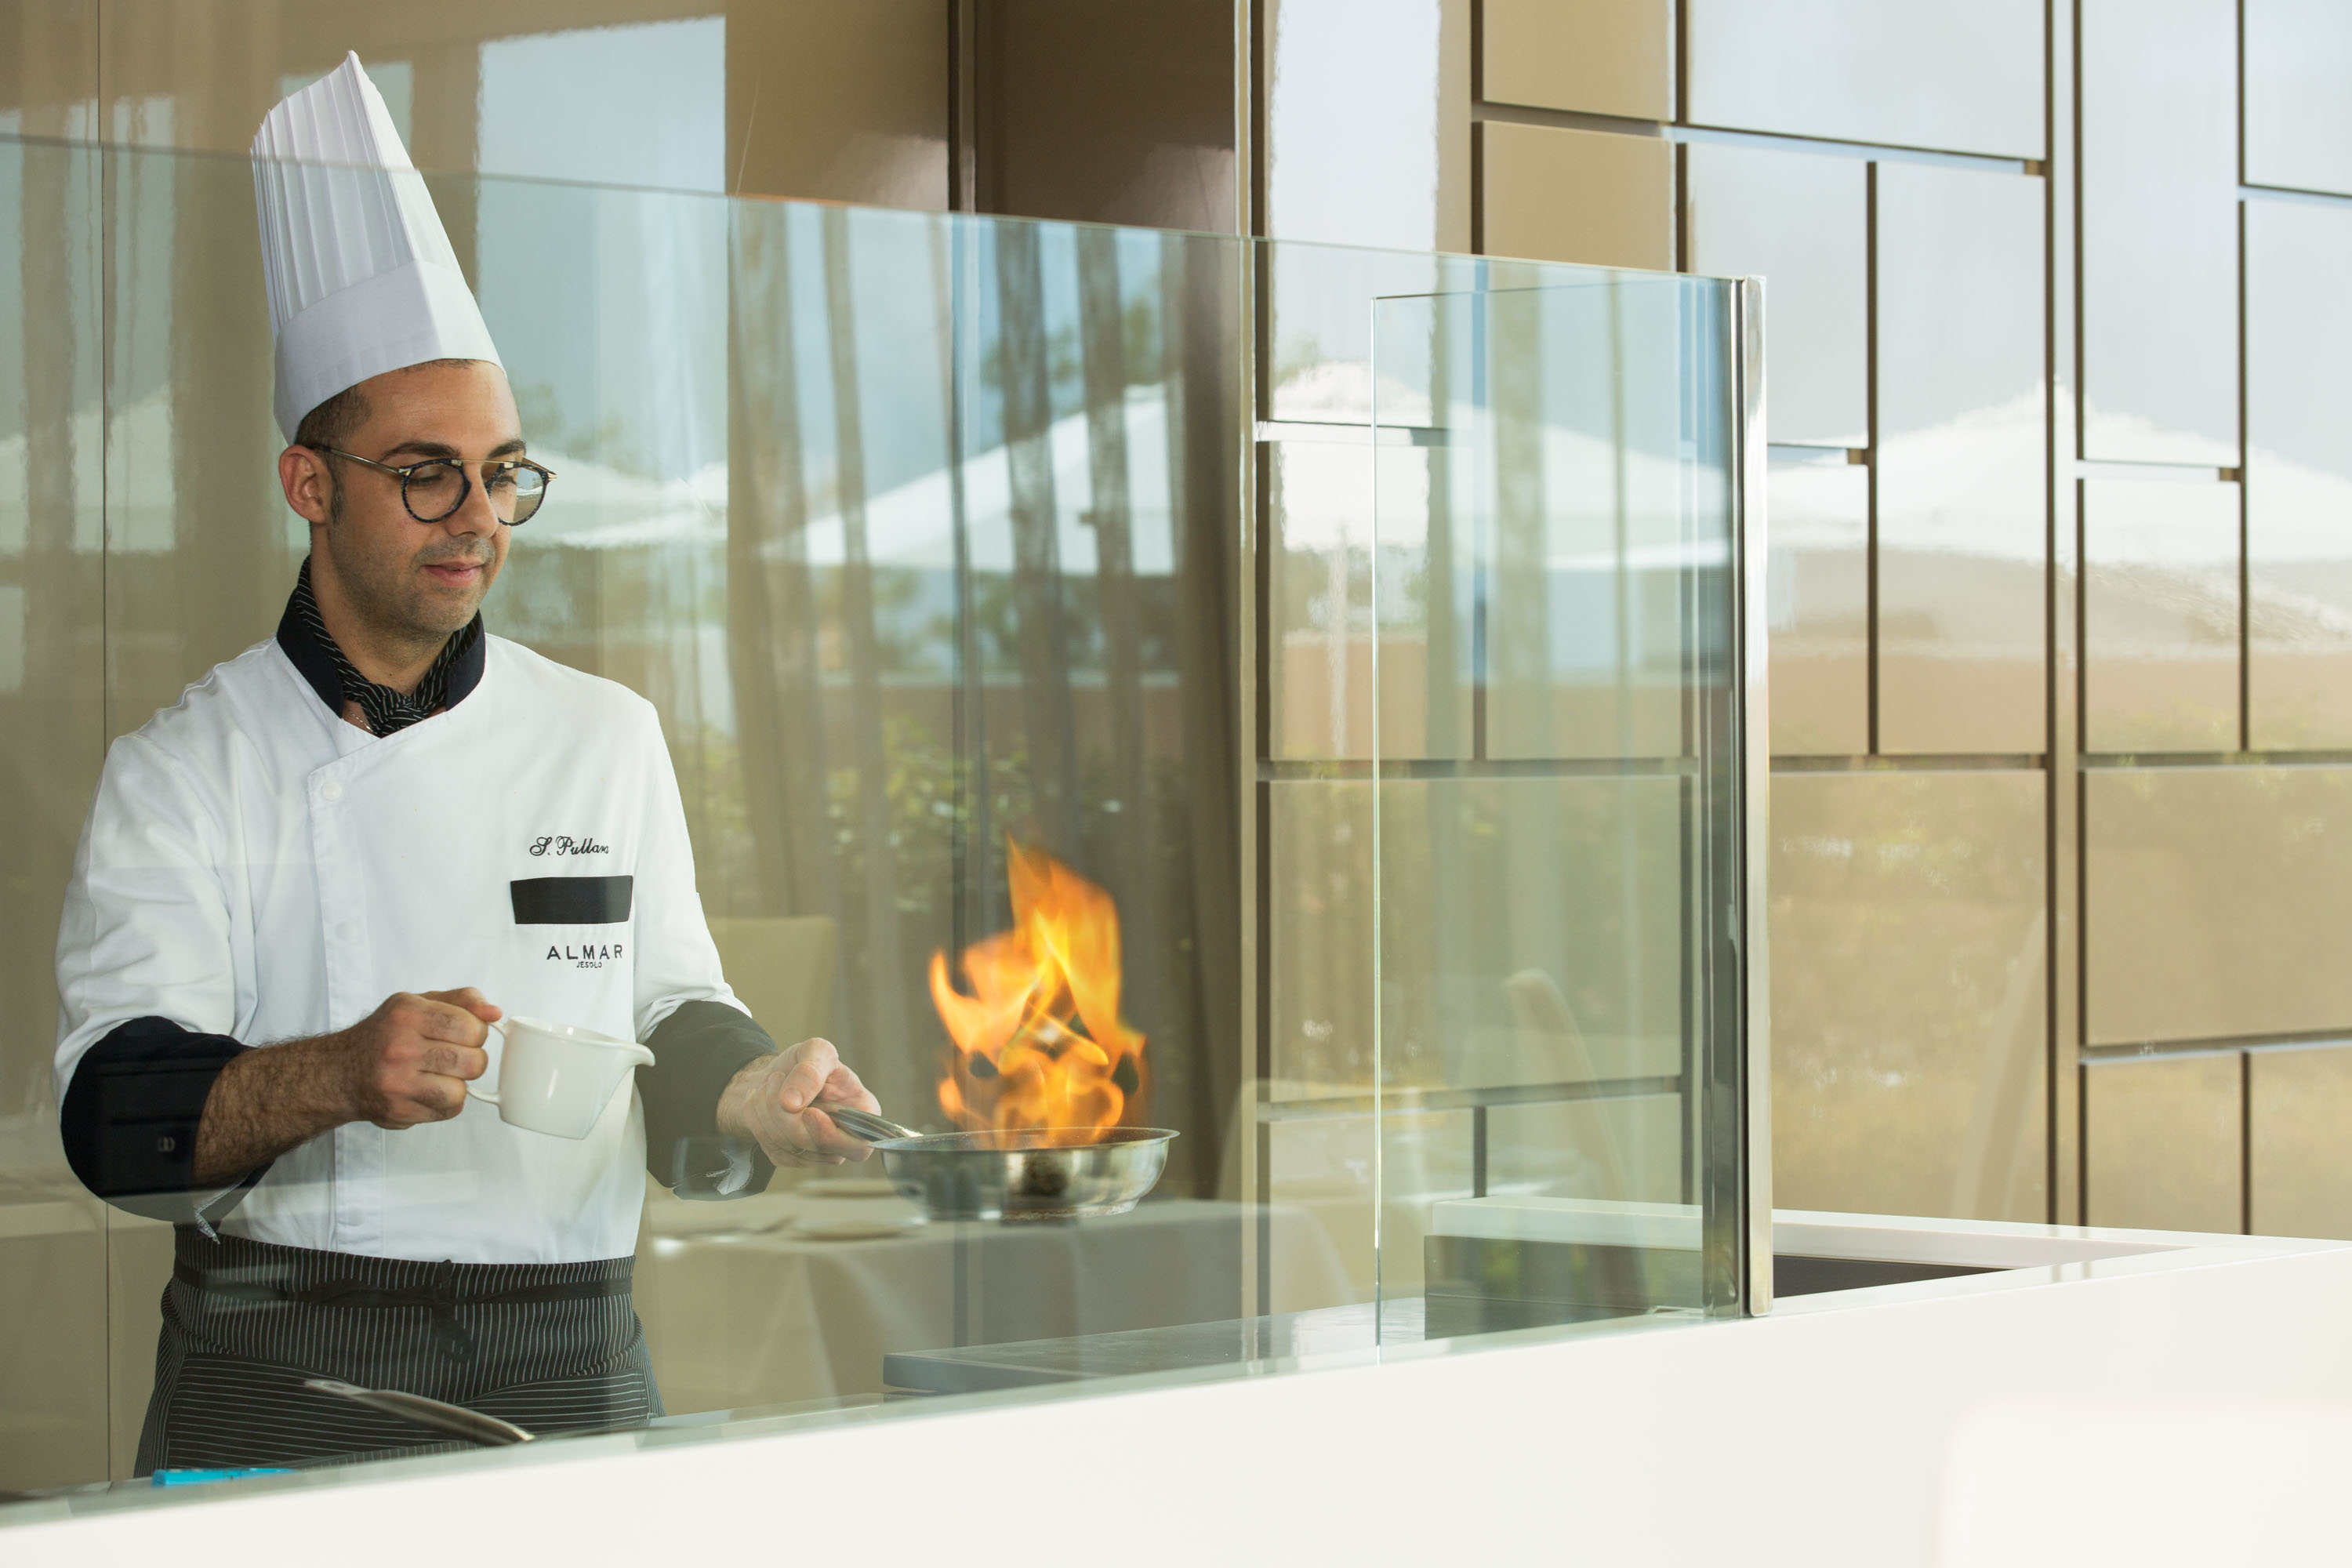 Live cooking show a ötcsillagos Resort & Spa Almar Jesolo